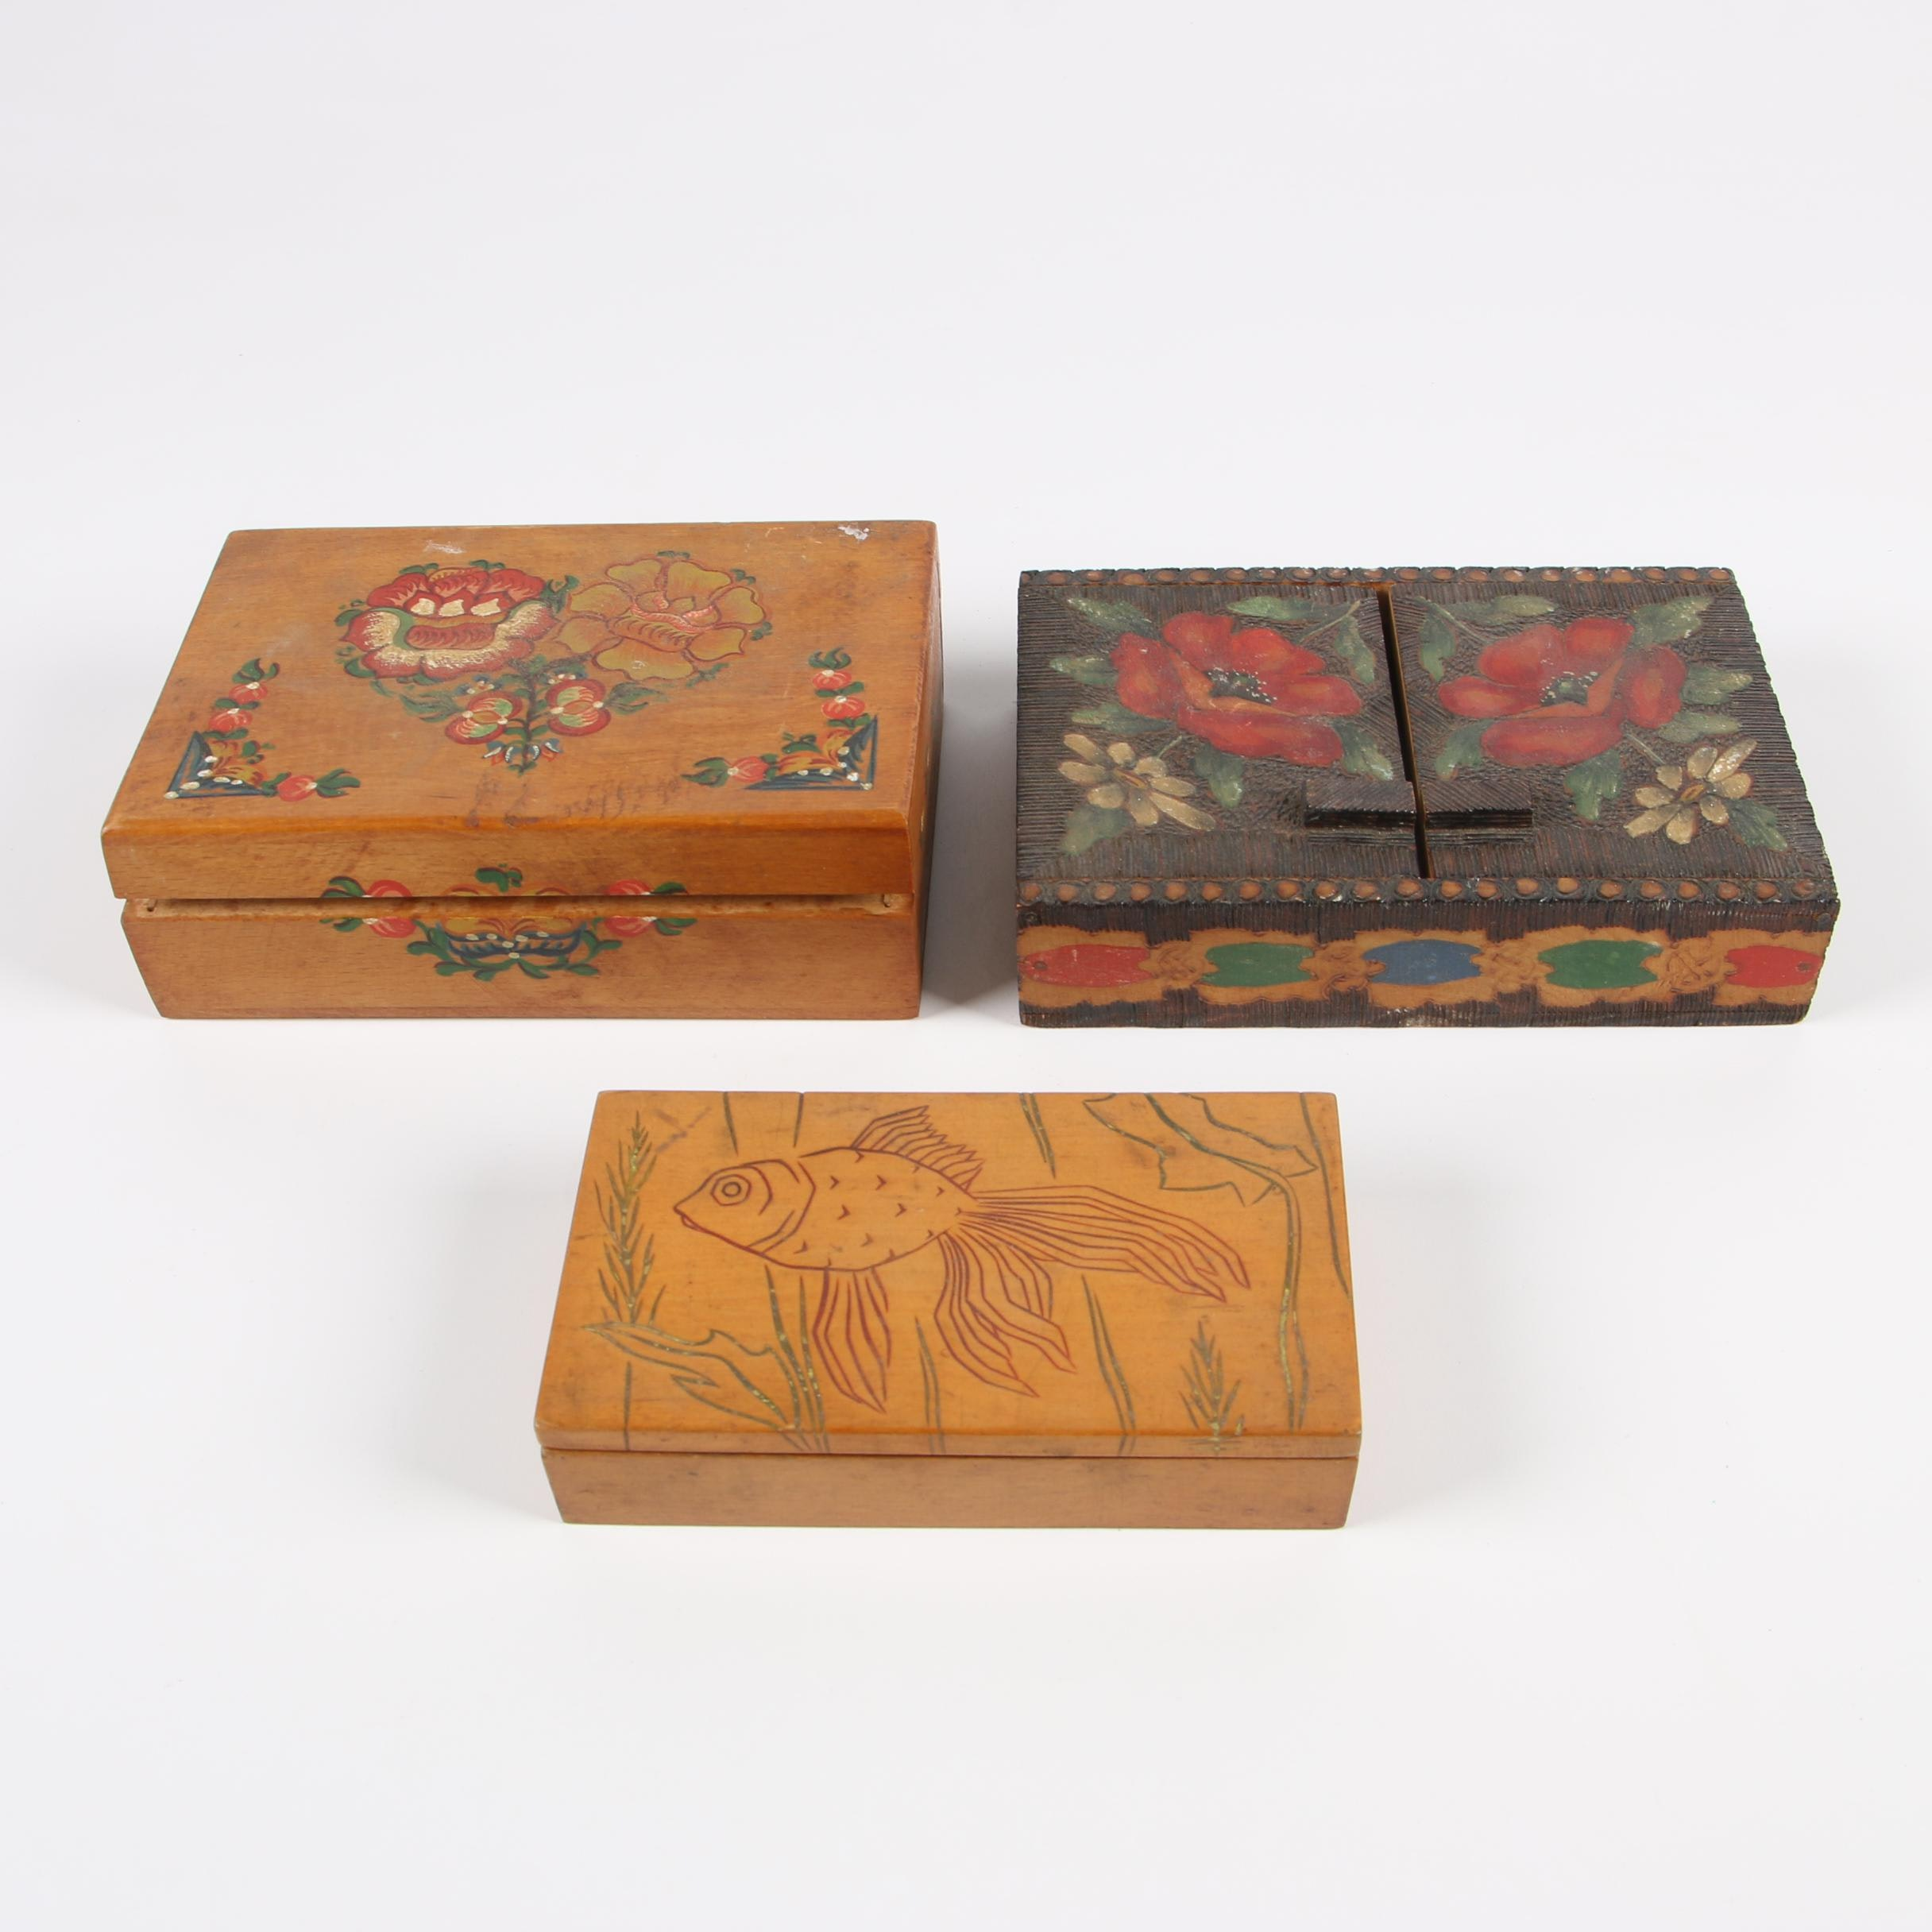 Pyrography and Hand-Decorated Wooden Boxes, 20th Century